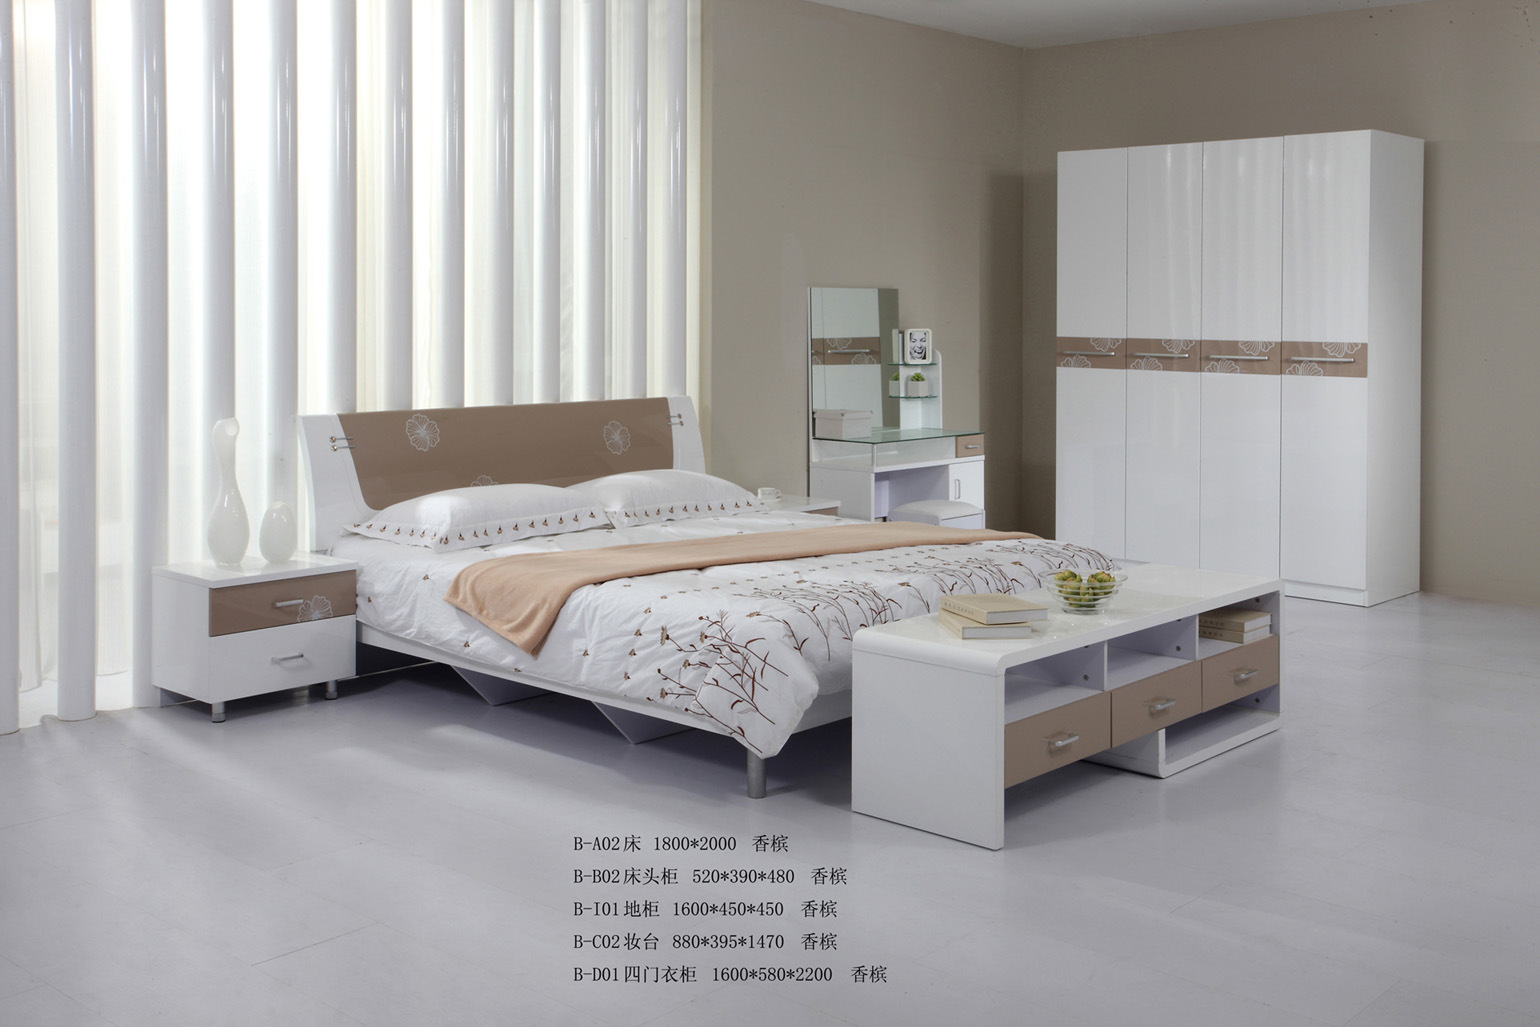 china bedroom furniture white shine b a02 china bedroom set mdf